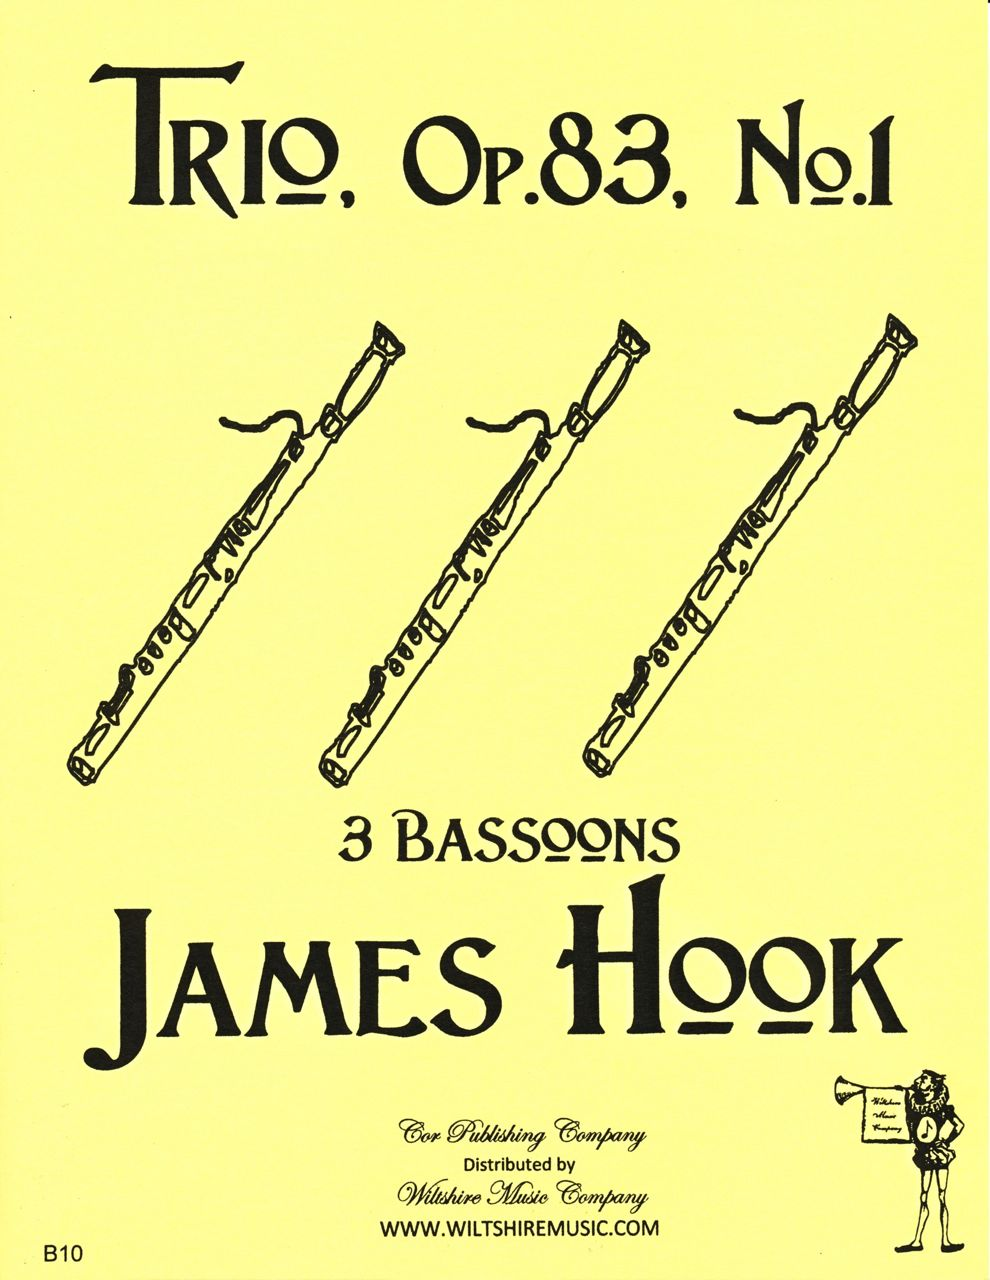 Trio, Op.83, No.1 for 3 Basoons, James Hook